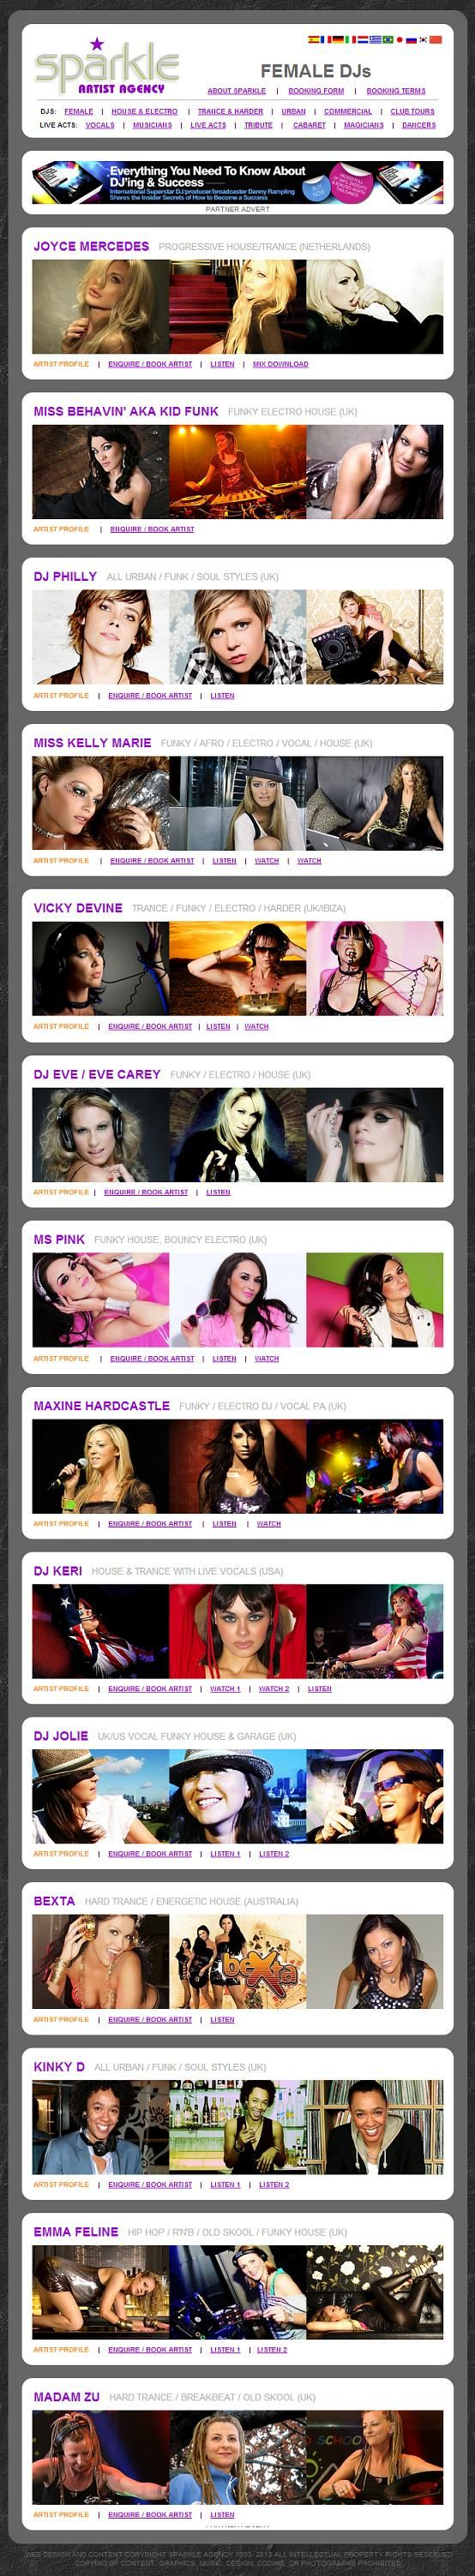 Sparkle Agency Worldwide DJ Booking - It's not just our DJs that ROCK!